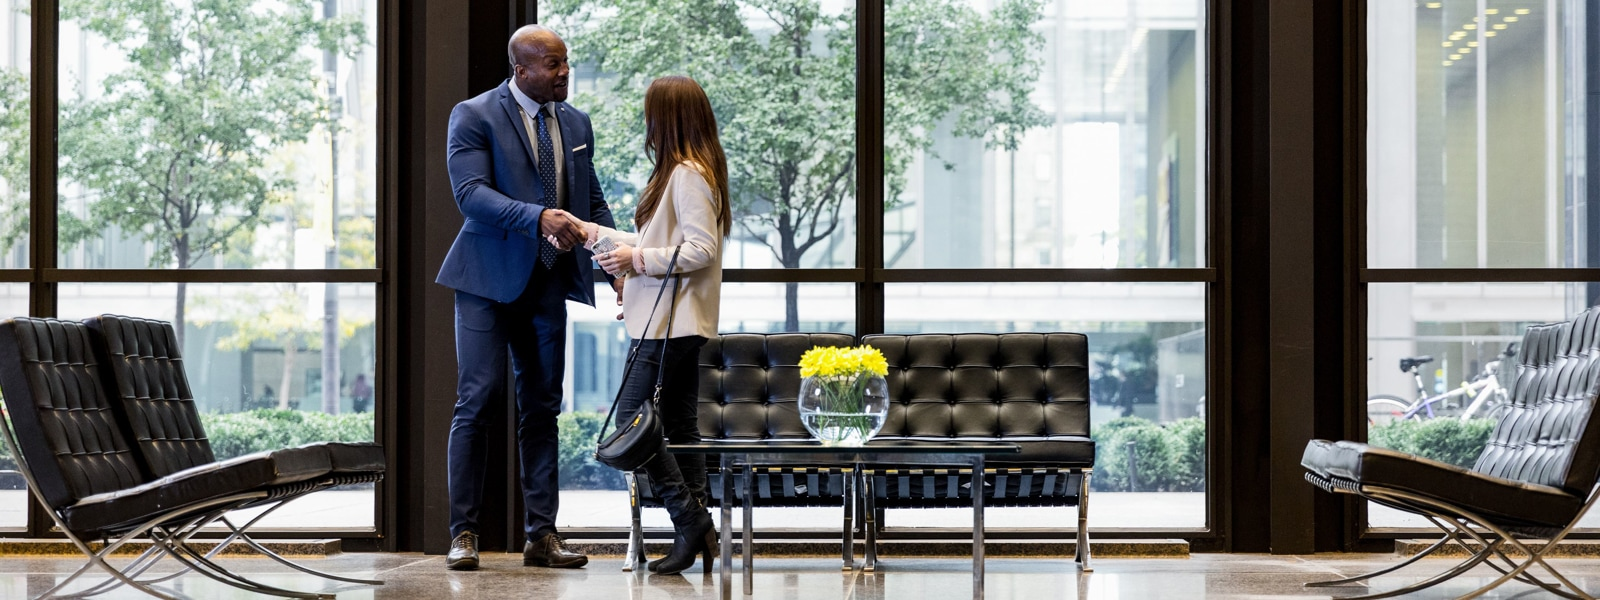 Businessman shaking hands with client in professional building lobby